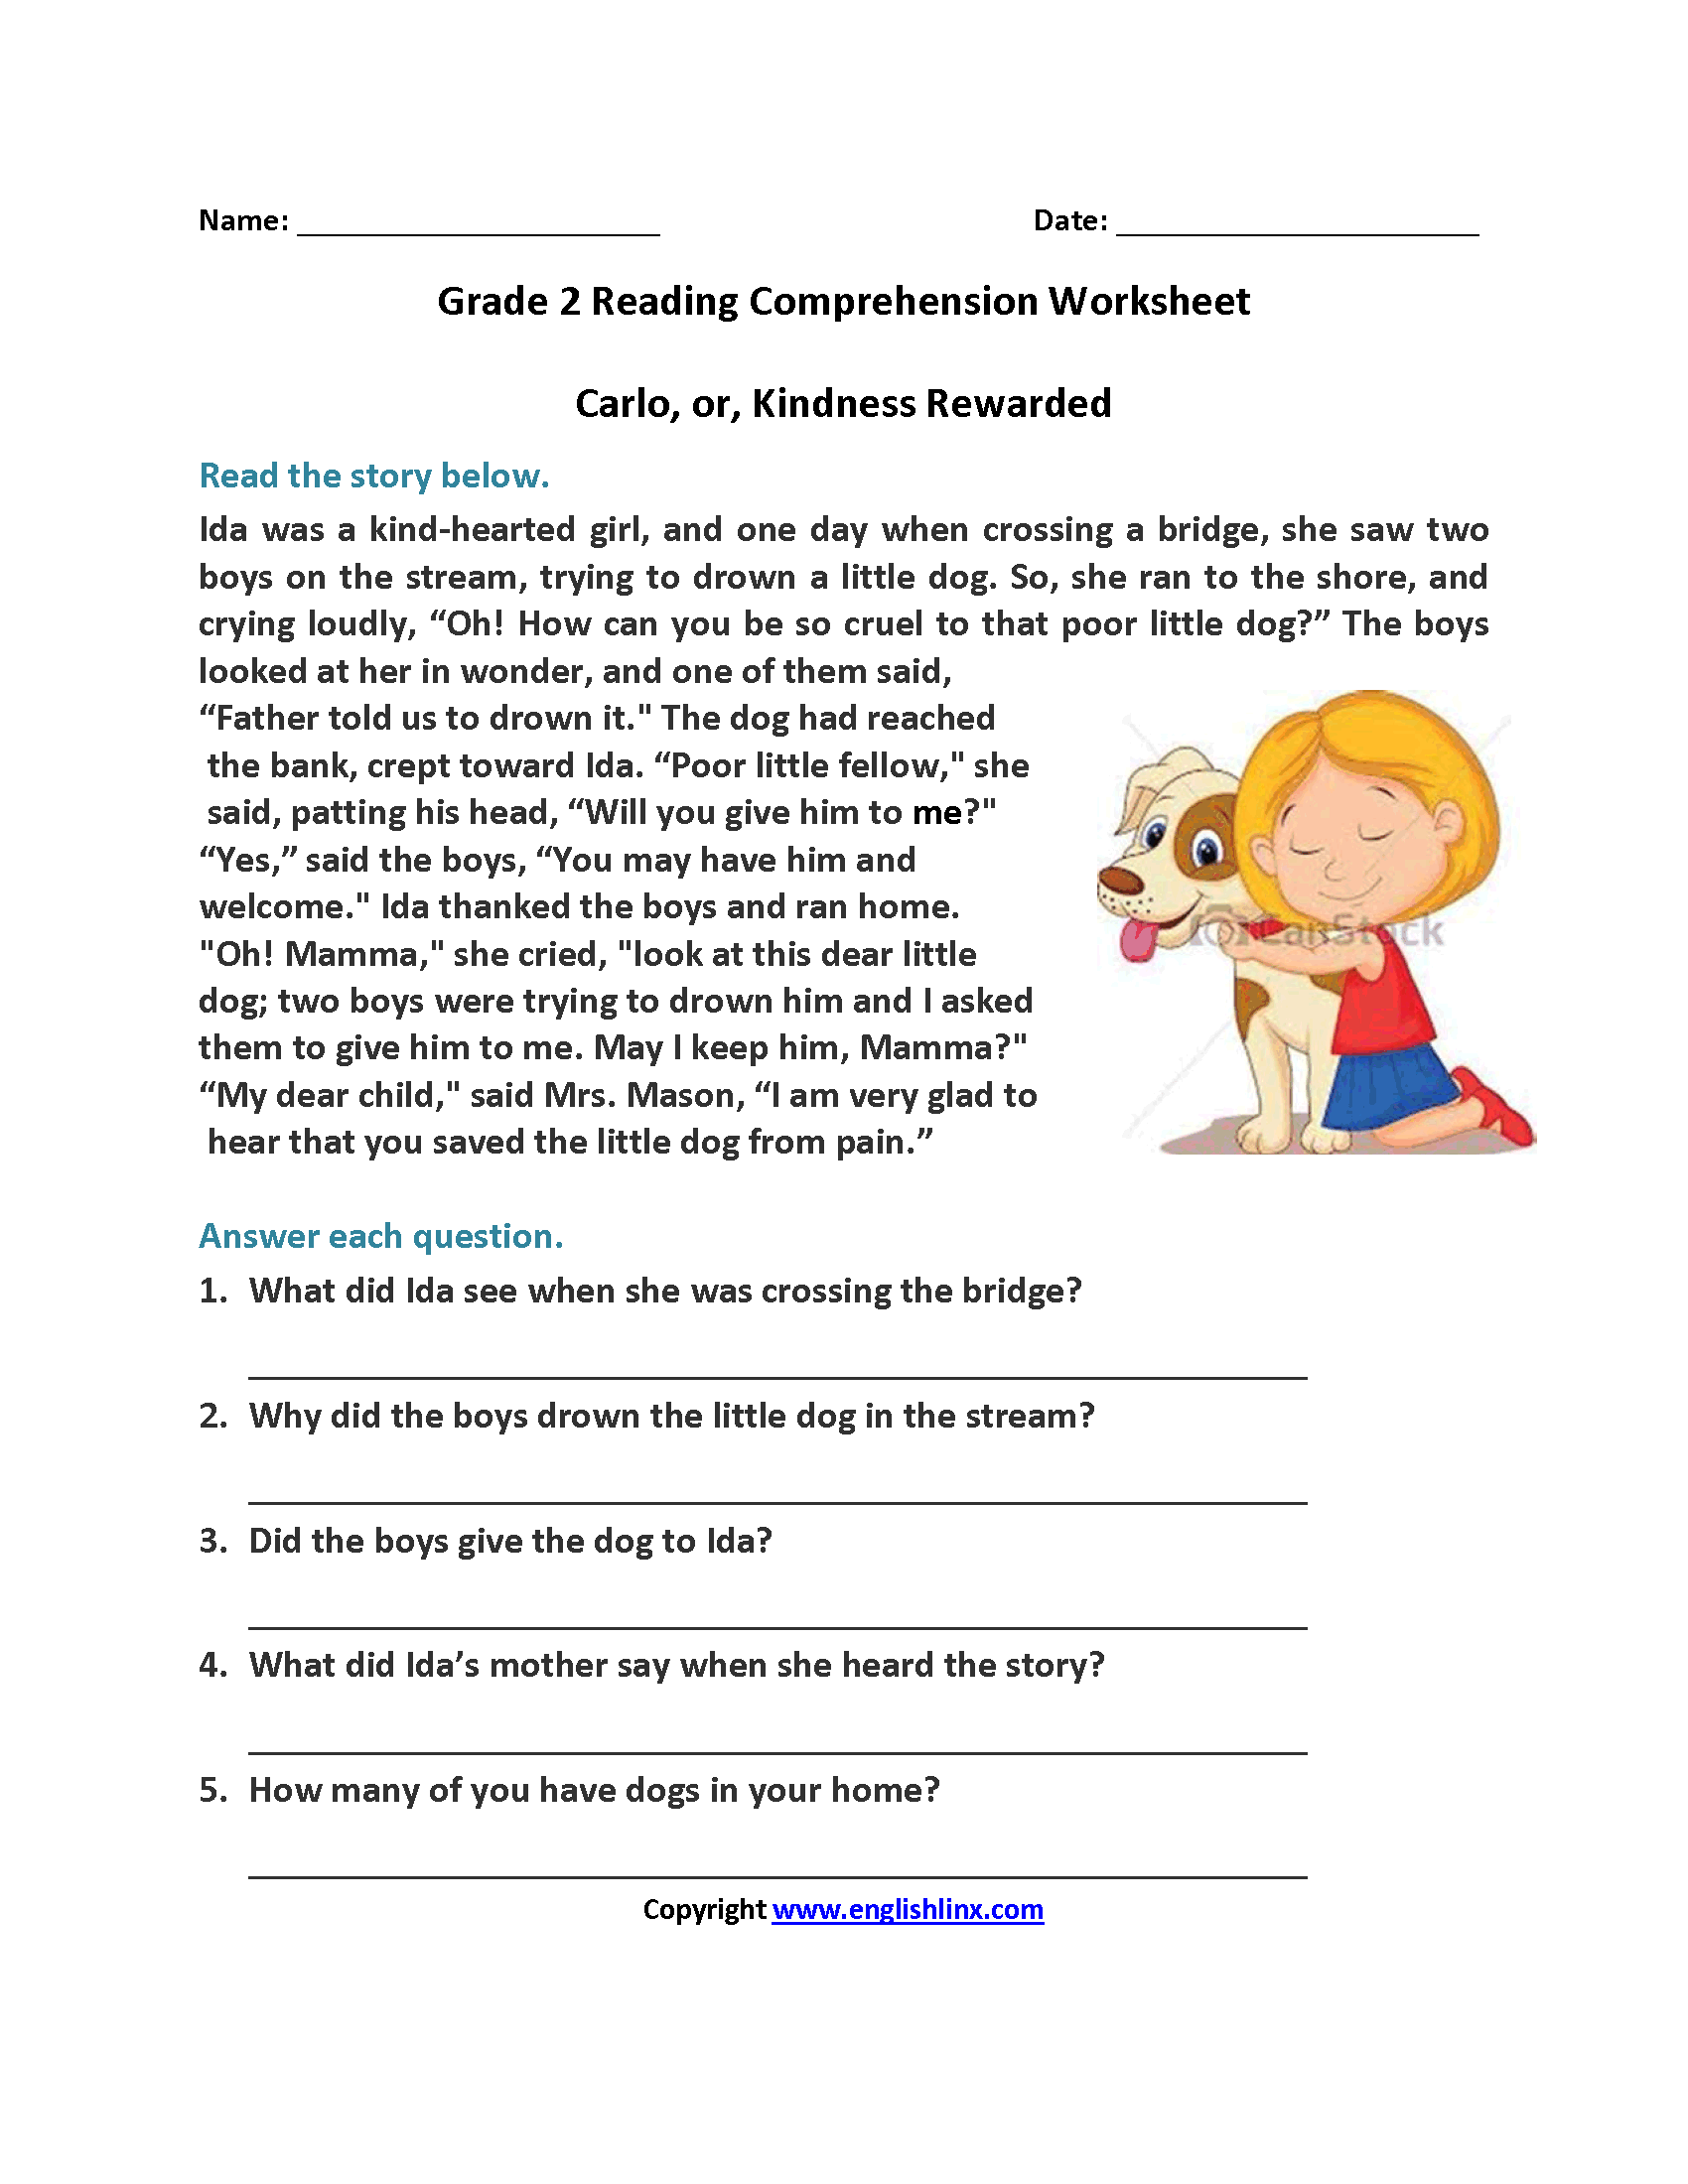 Carlo or Kindness Rewarded Second Grade Reading Worksheets – Free Printable 7th Grade Reading Comprehension Worksheets